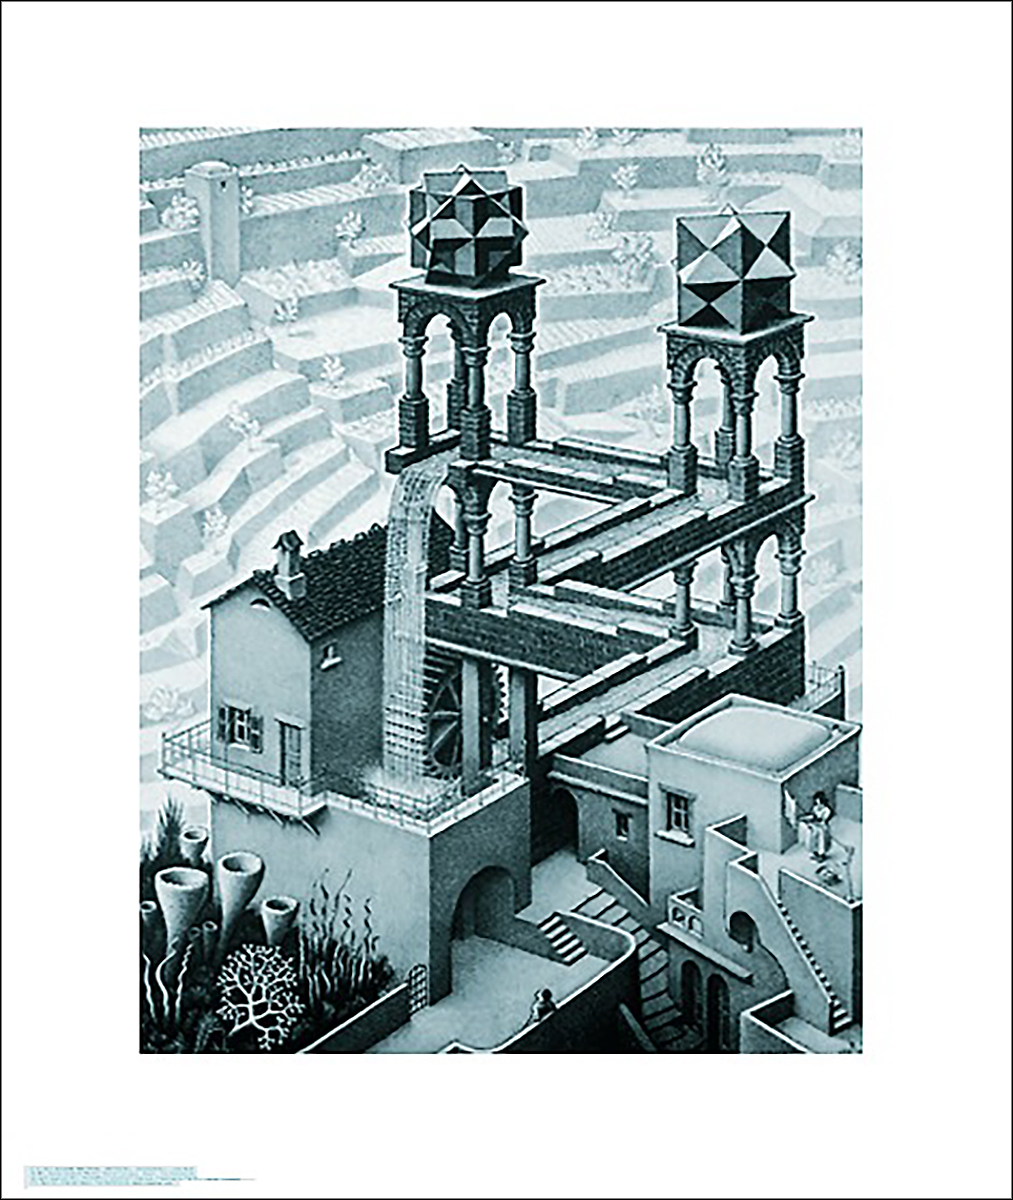 Breaking Bad Bettwäsche M.c. Escher Poster Waterfall - Art Prints Buy Now In The Shop Close Up Gmbh